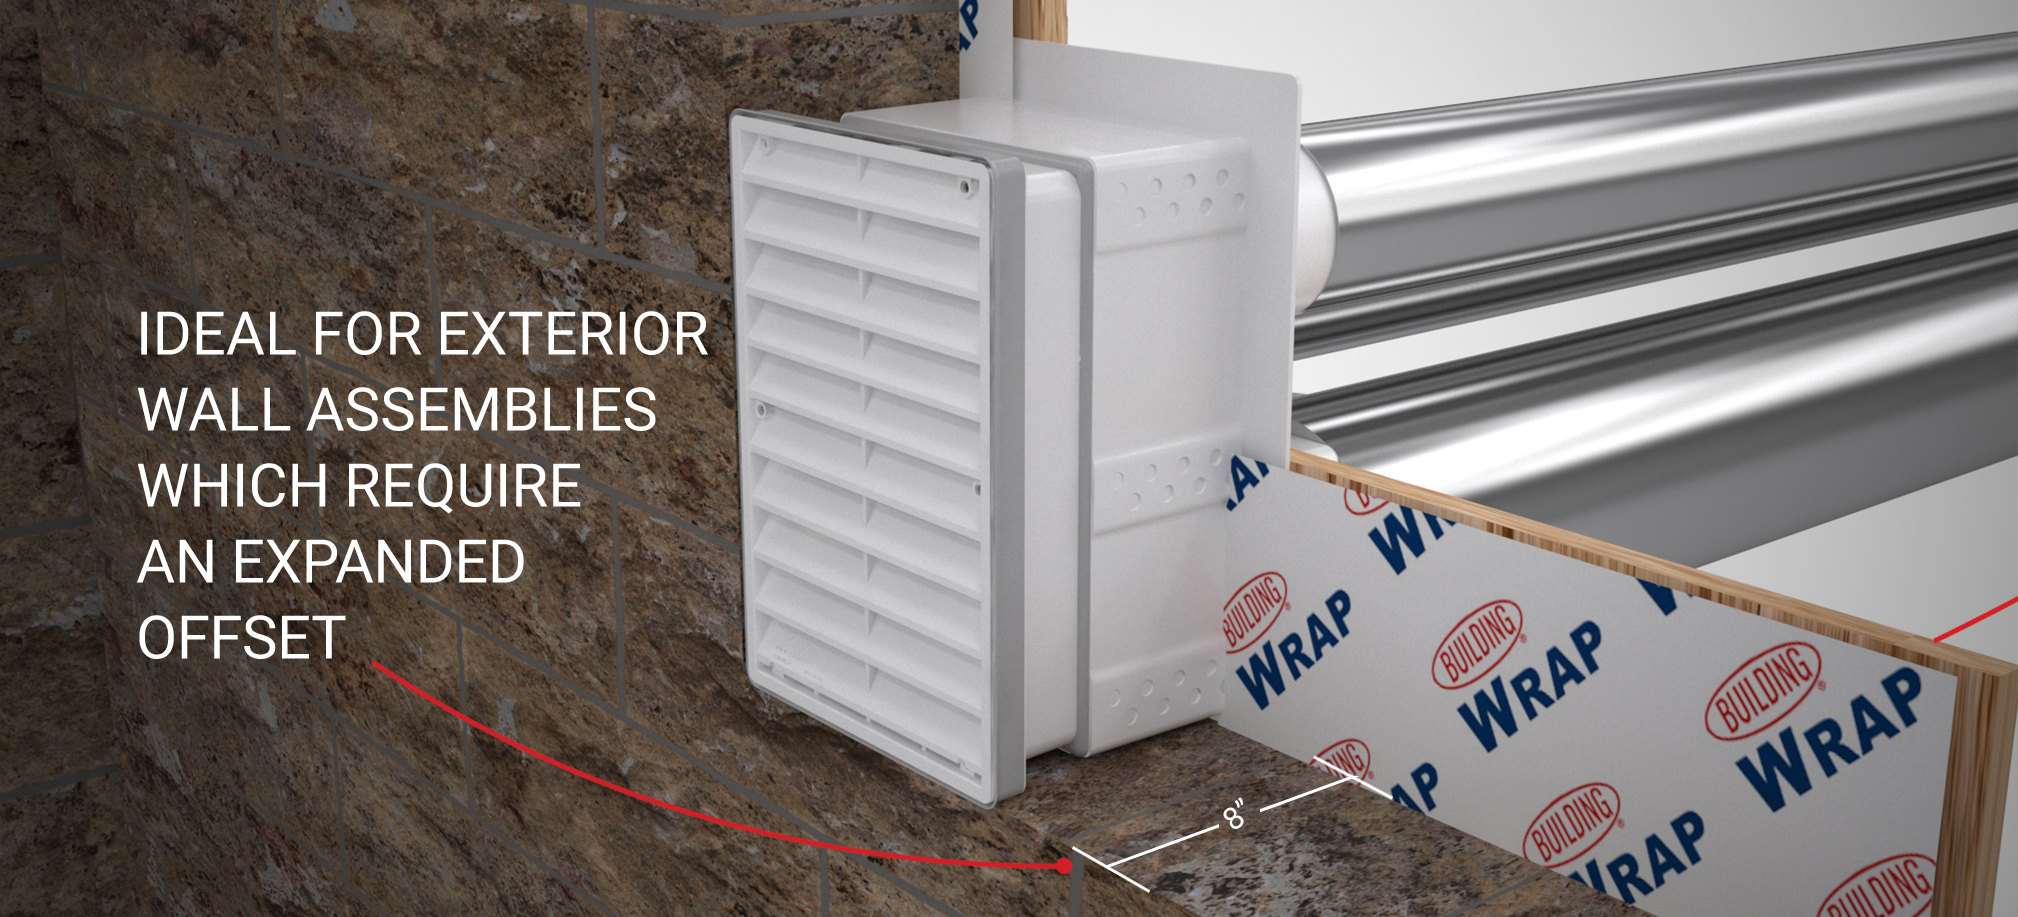 Ideal for Exterior wall assemblies which require an expanded offset